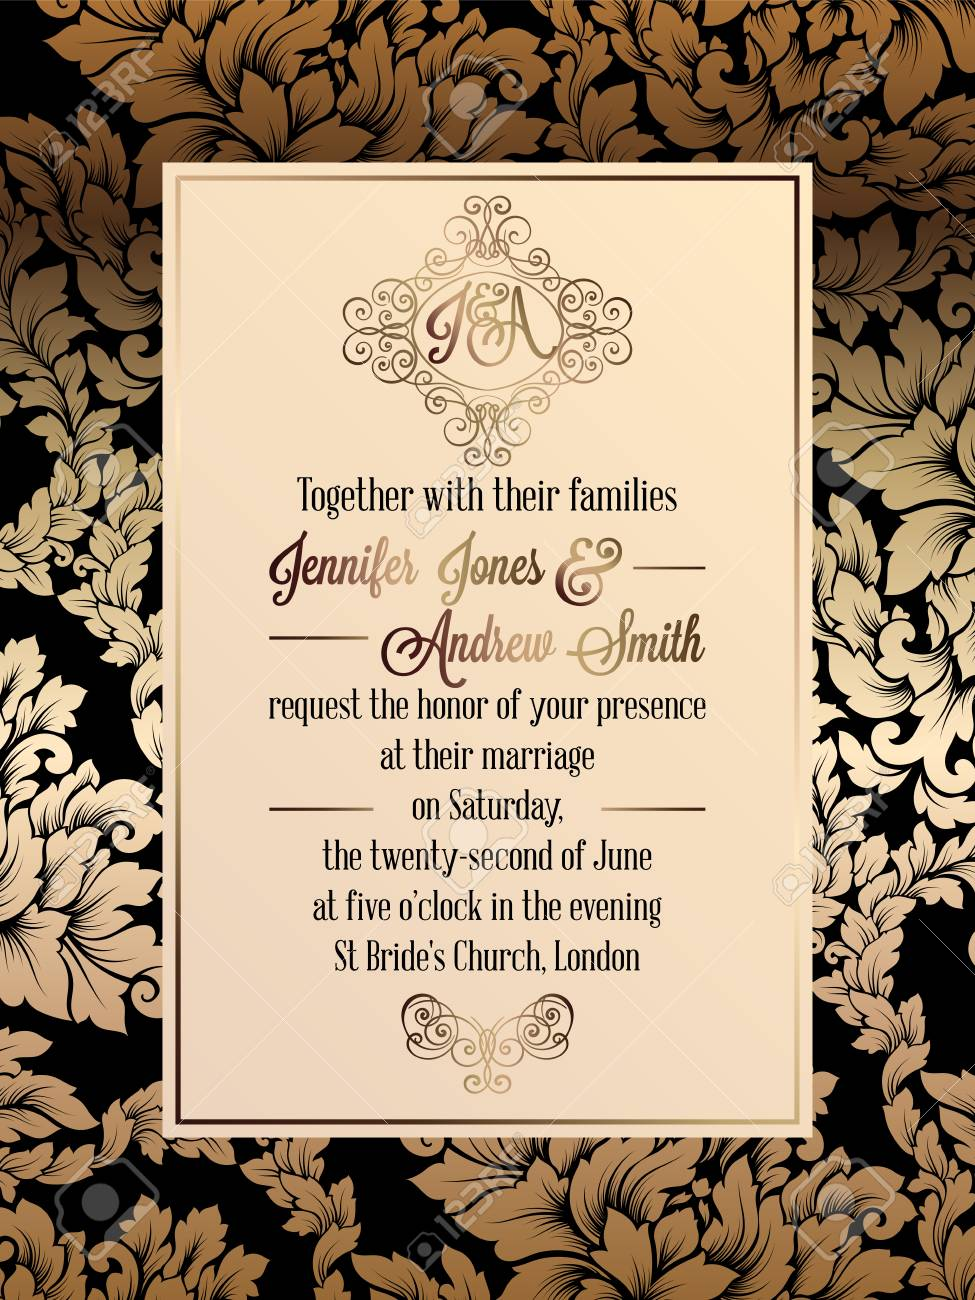 Vintage Baroque Style Wedding Invitation Card Template Elegant Royalty Free Cliparts Vectors And Stock Illustration Image 81552040